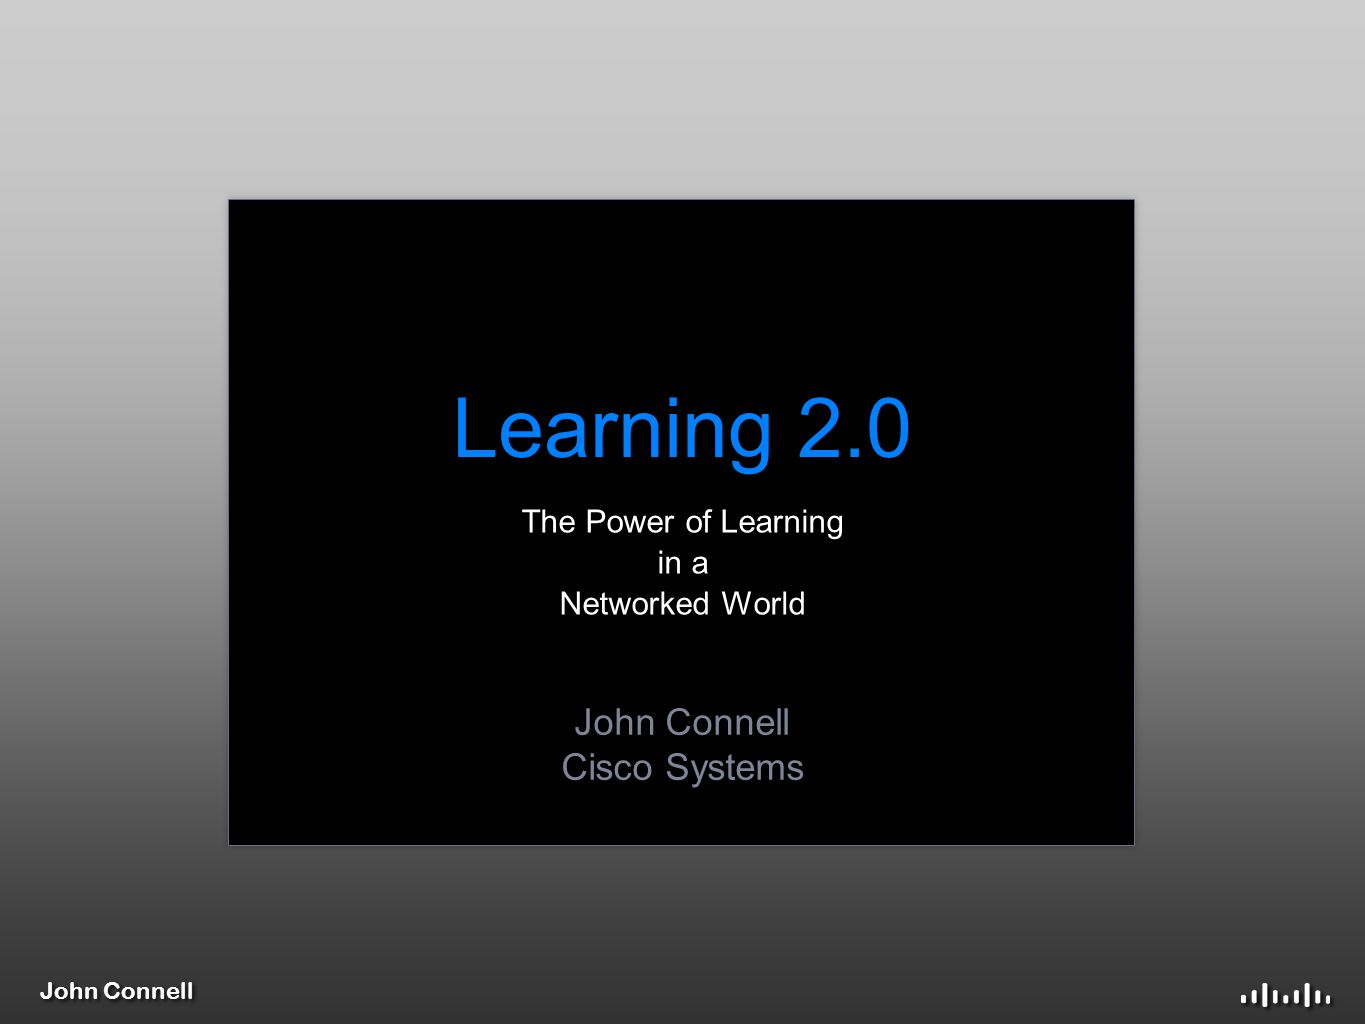 John Connell Learning 2.0 The Power of Learning in a Networked World John Connell Cisco Systems